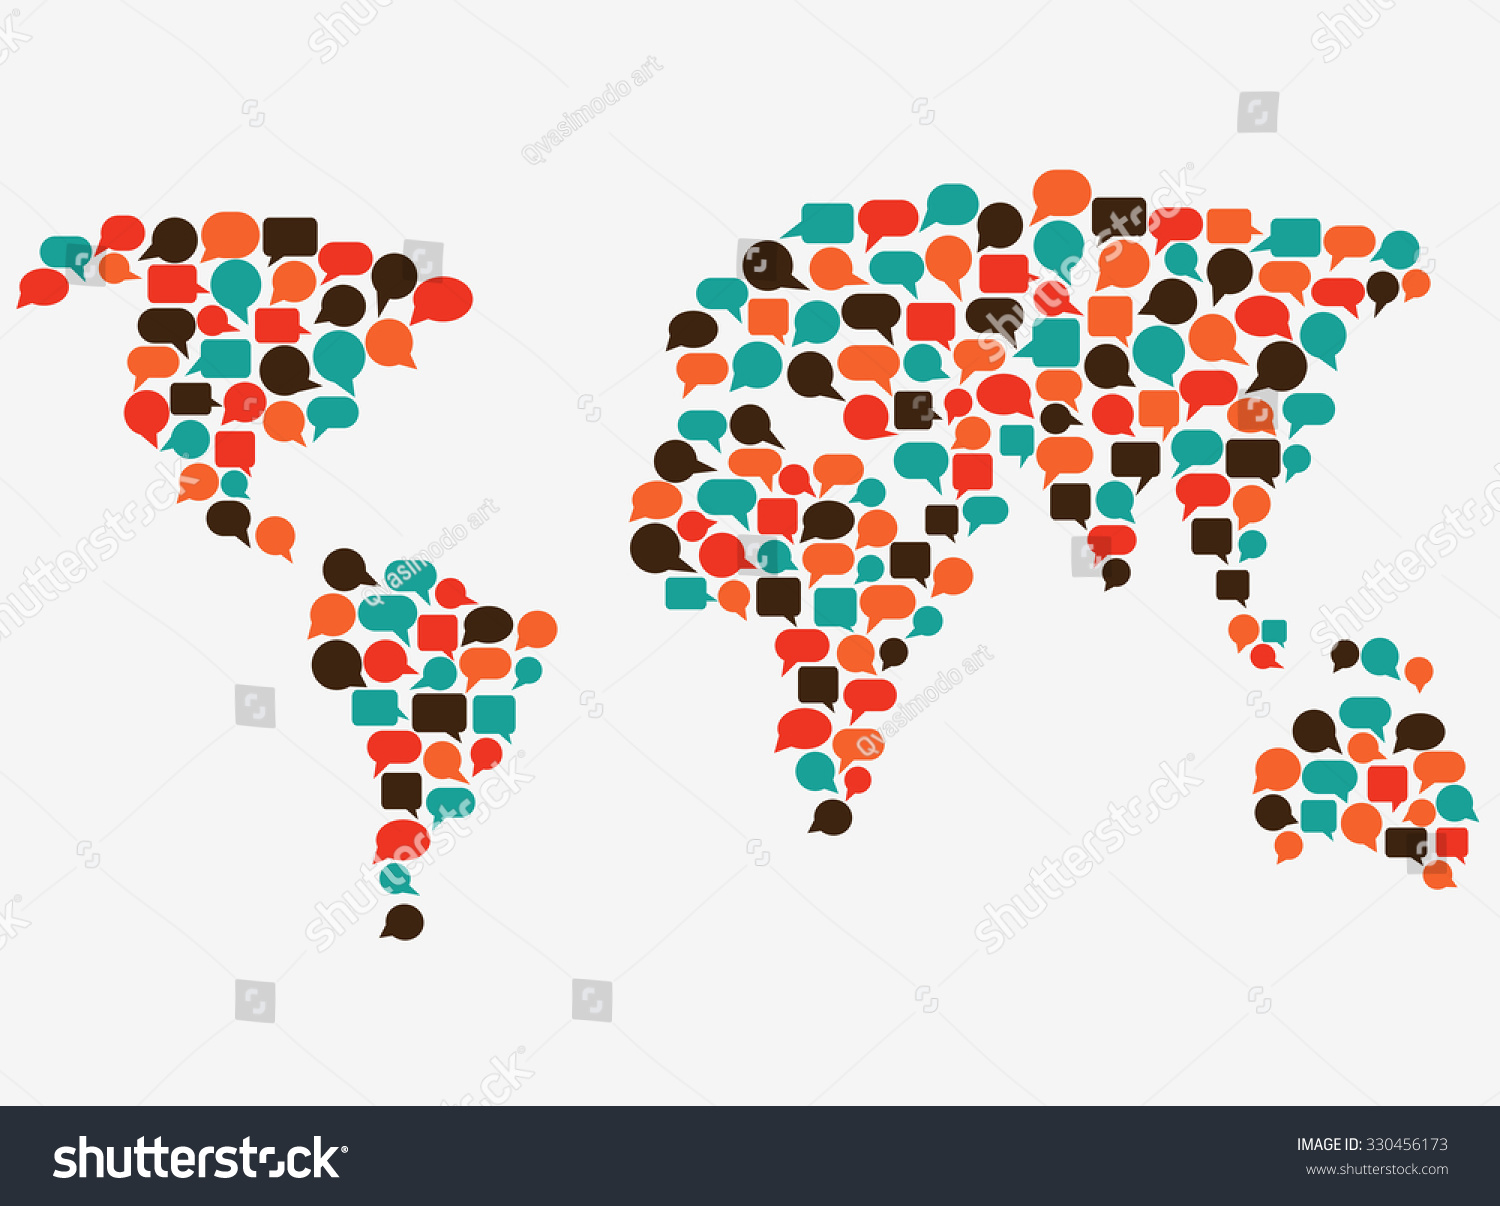 speech on overpopulation Here is a collection of some of our favorite quotes about various aspects of population balance we hope they can shed some light on our perspective as an organization.